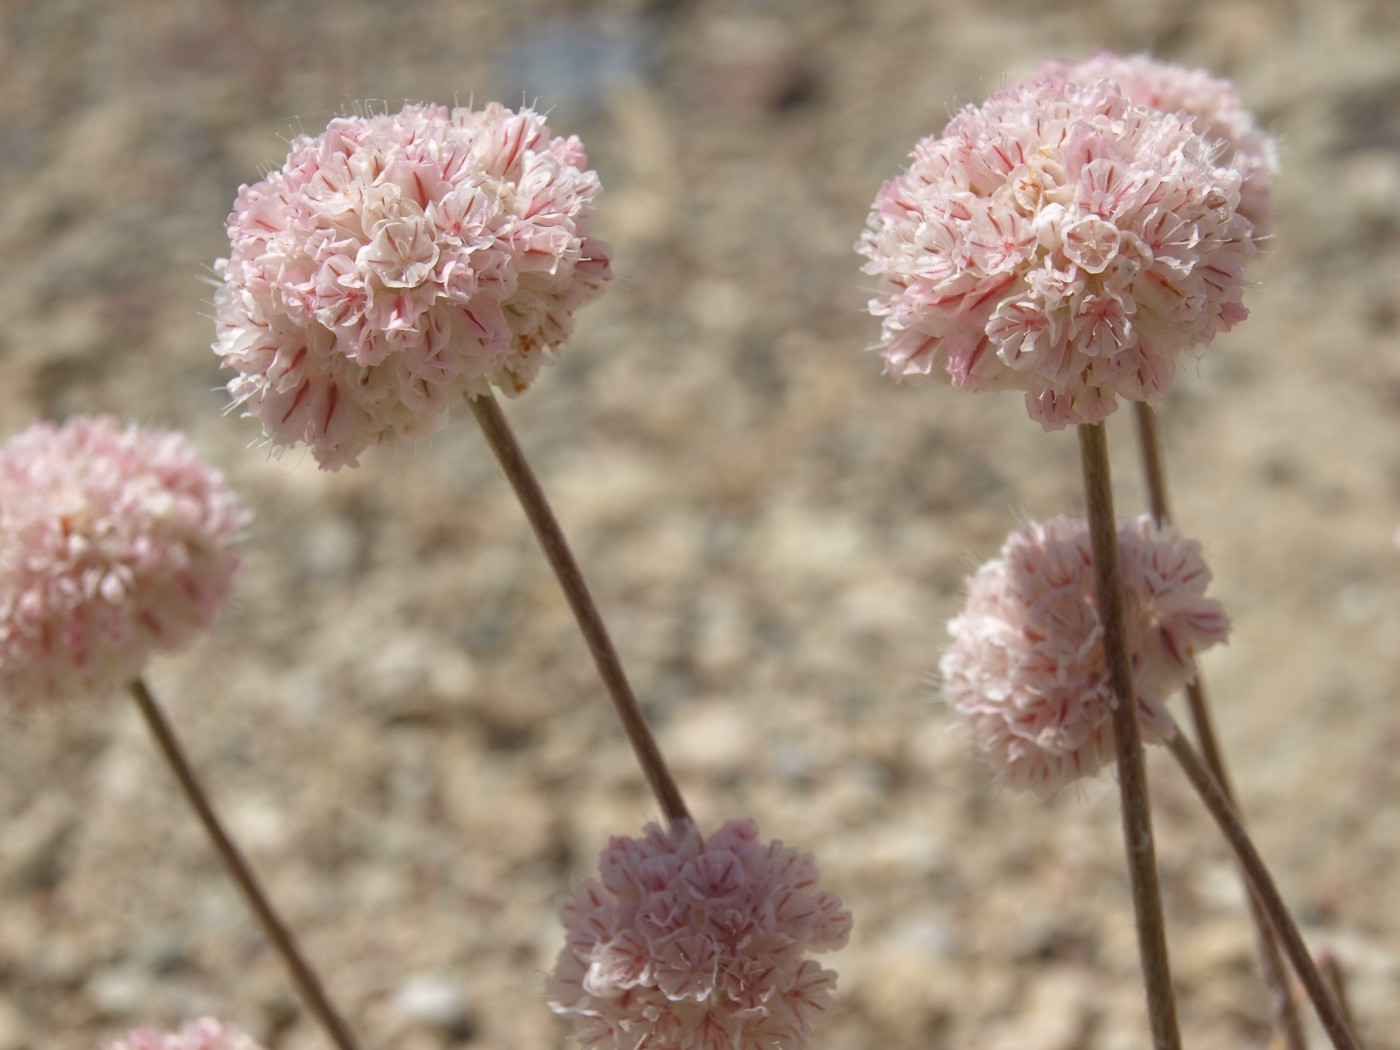 four light pink clustered flowers